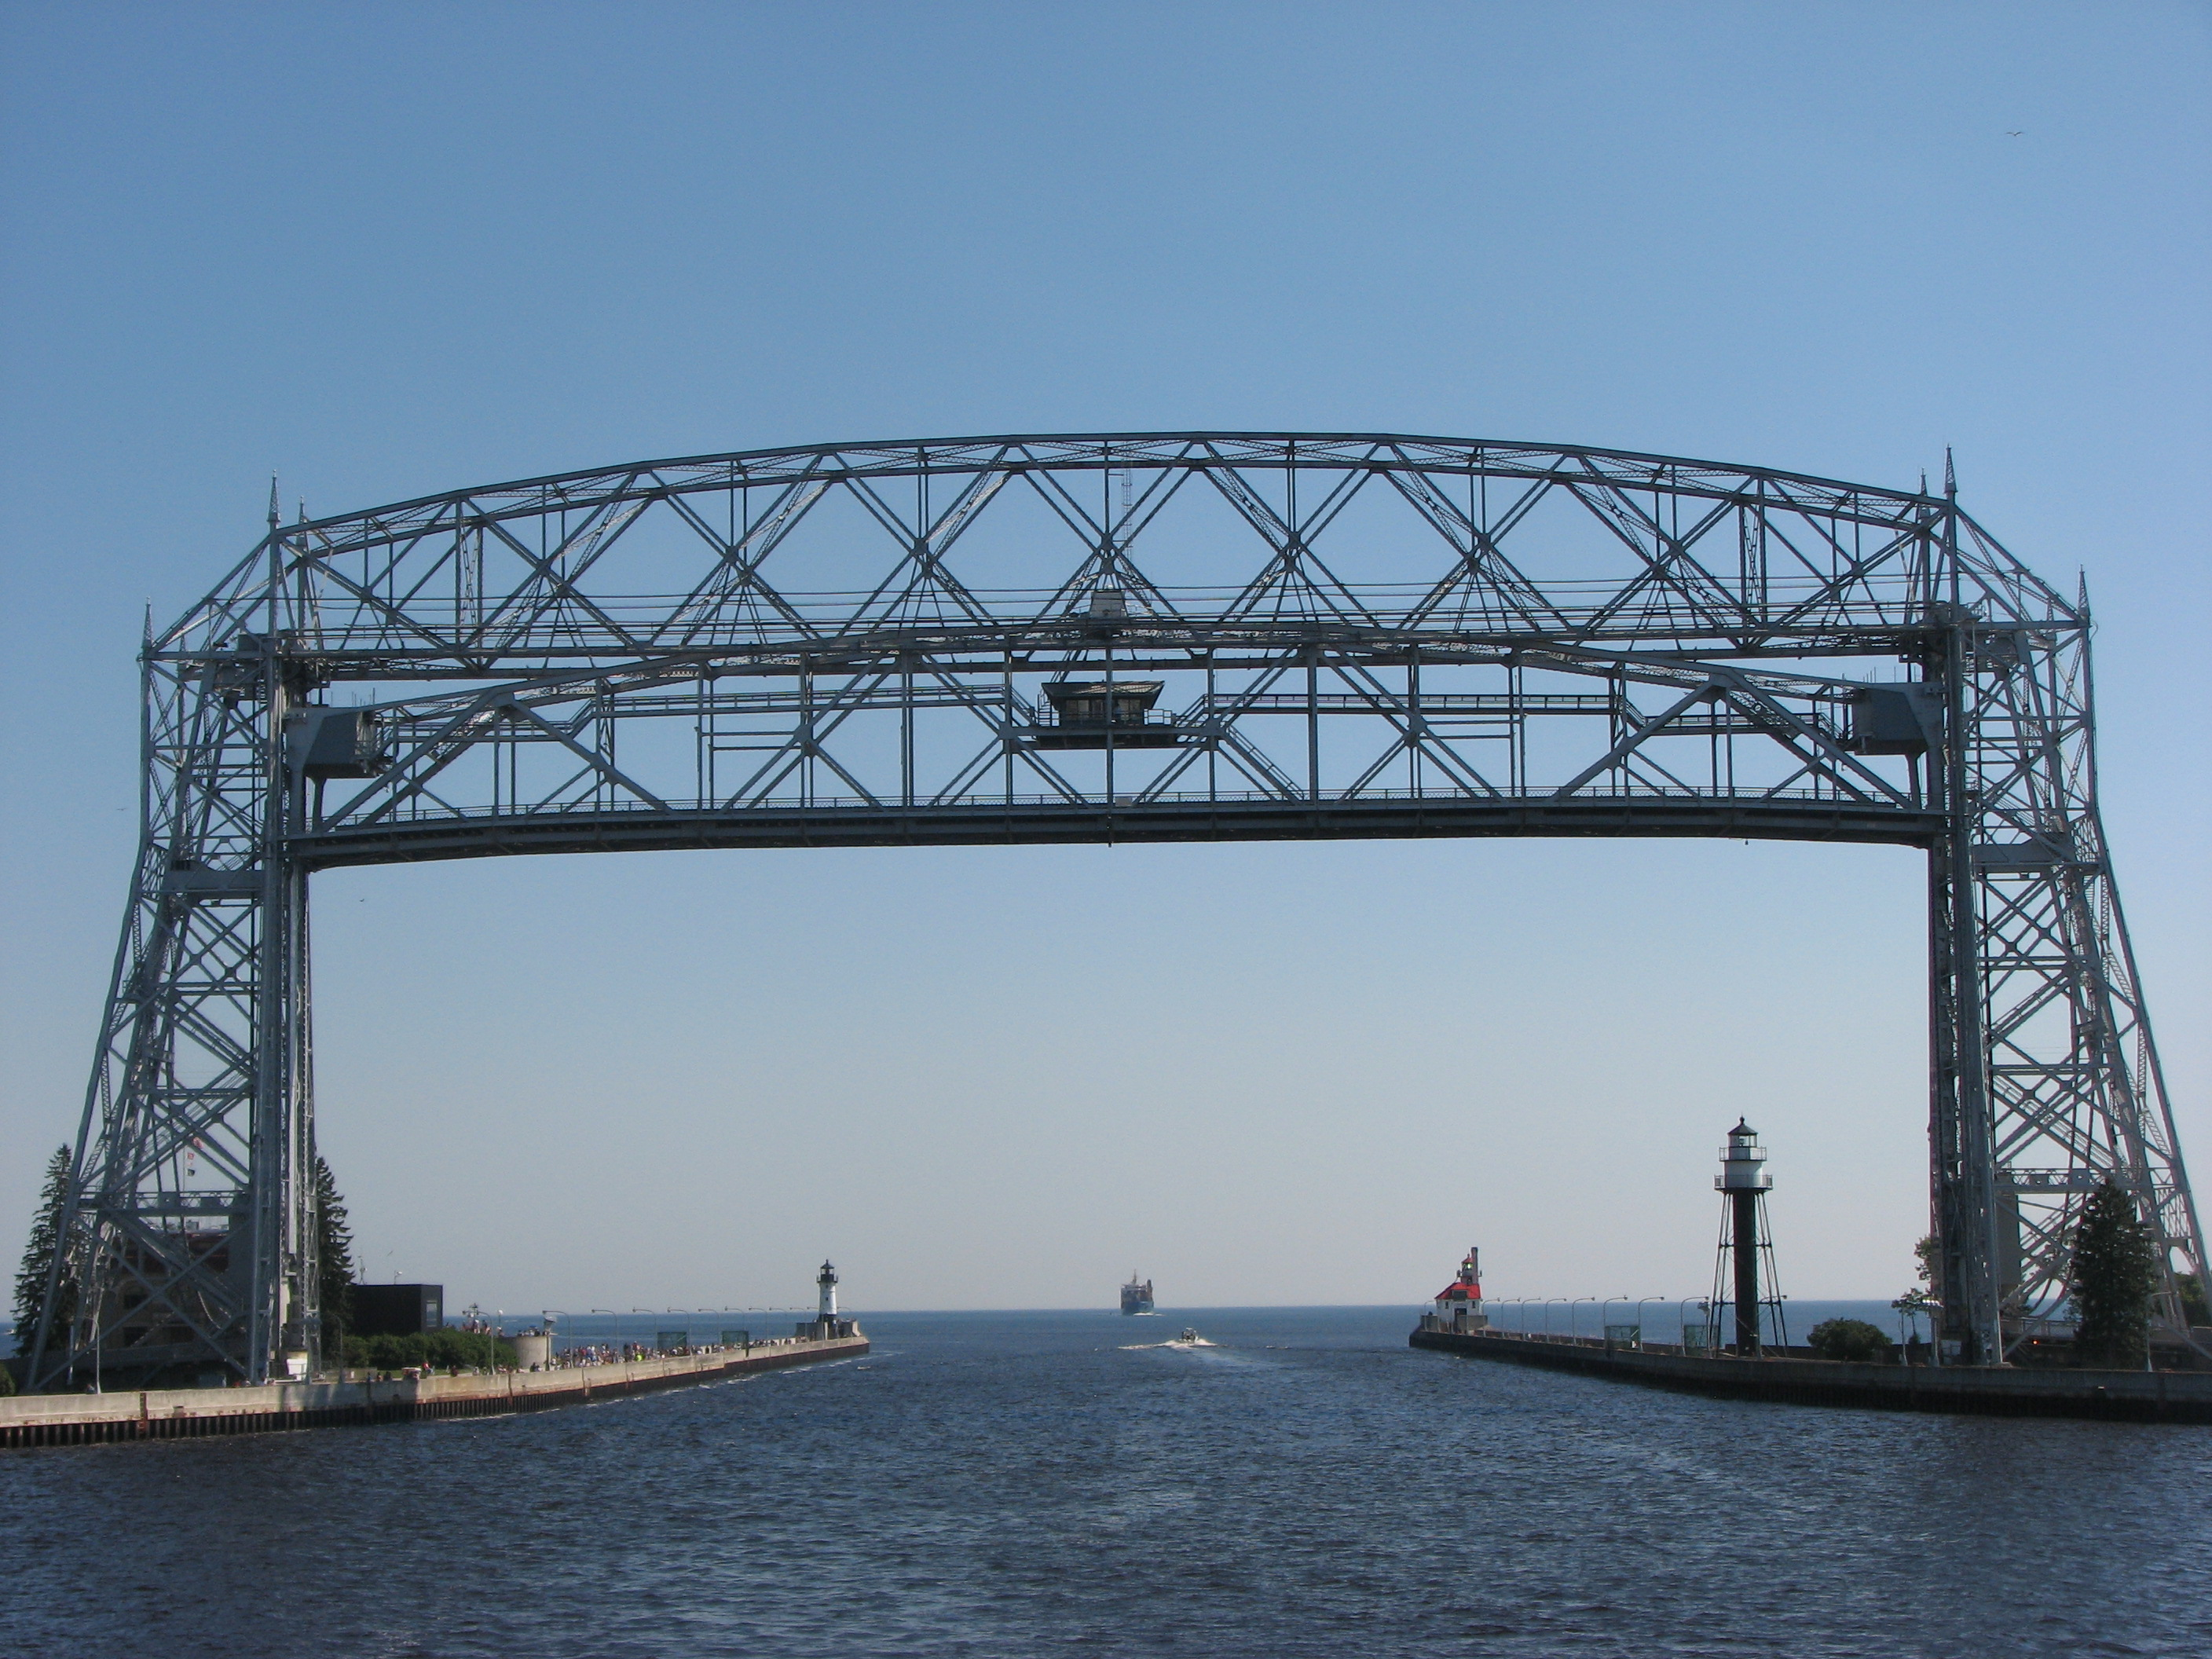 Duluth S Aerial Lift Bridge American Countryside